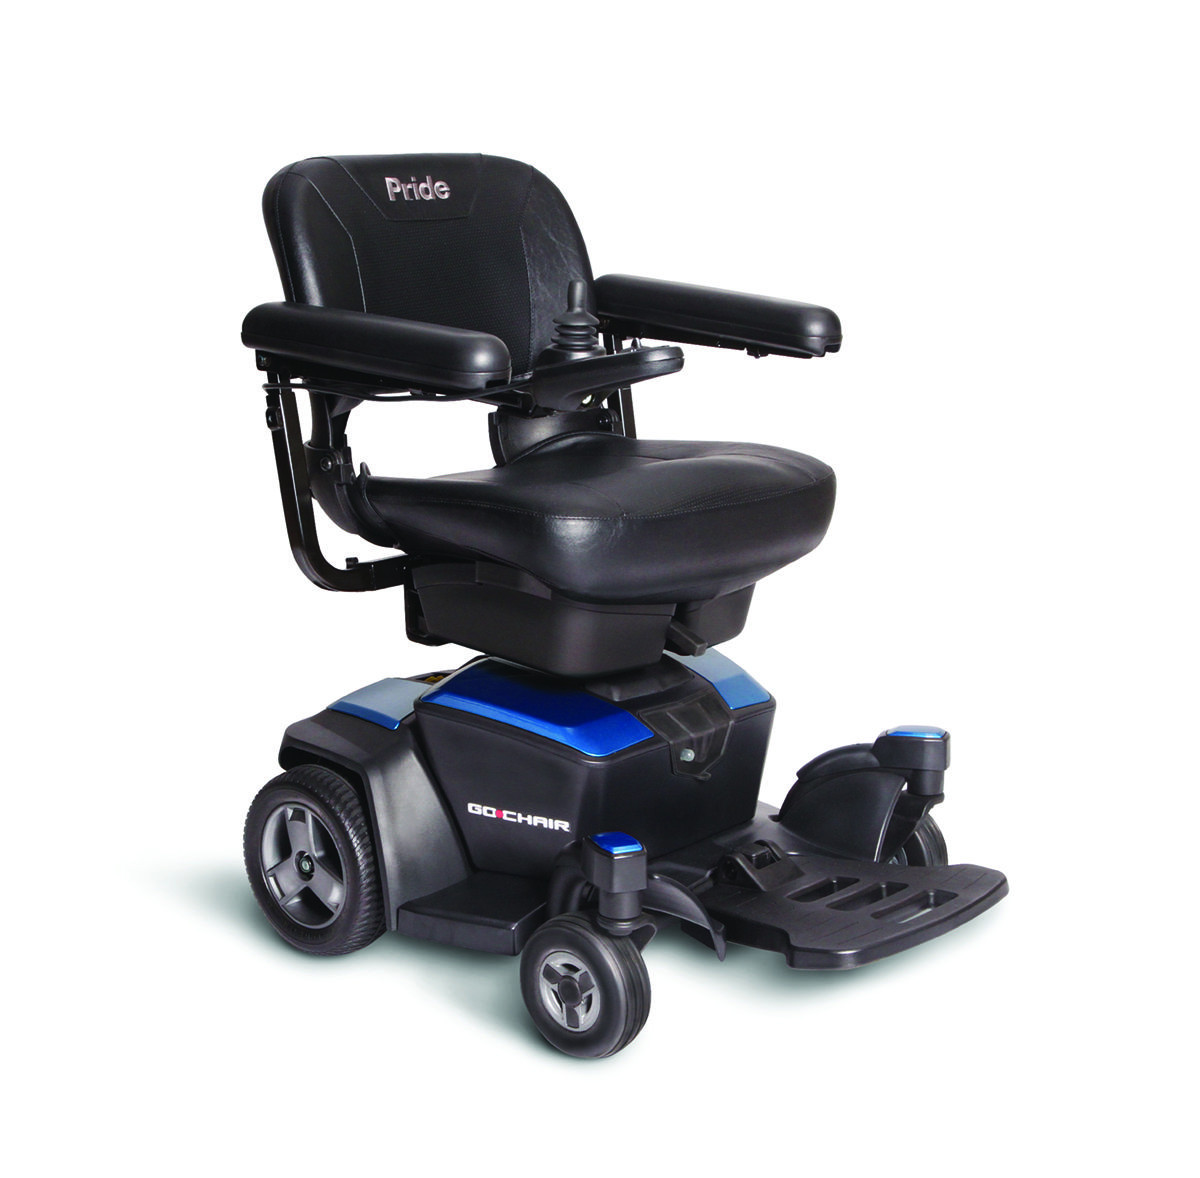 wheel chair for sale nichols and stone dining chairs go power wheelchair lowest prices tax